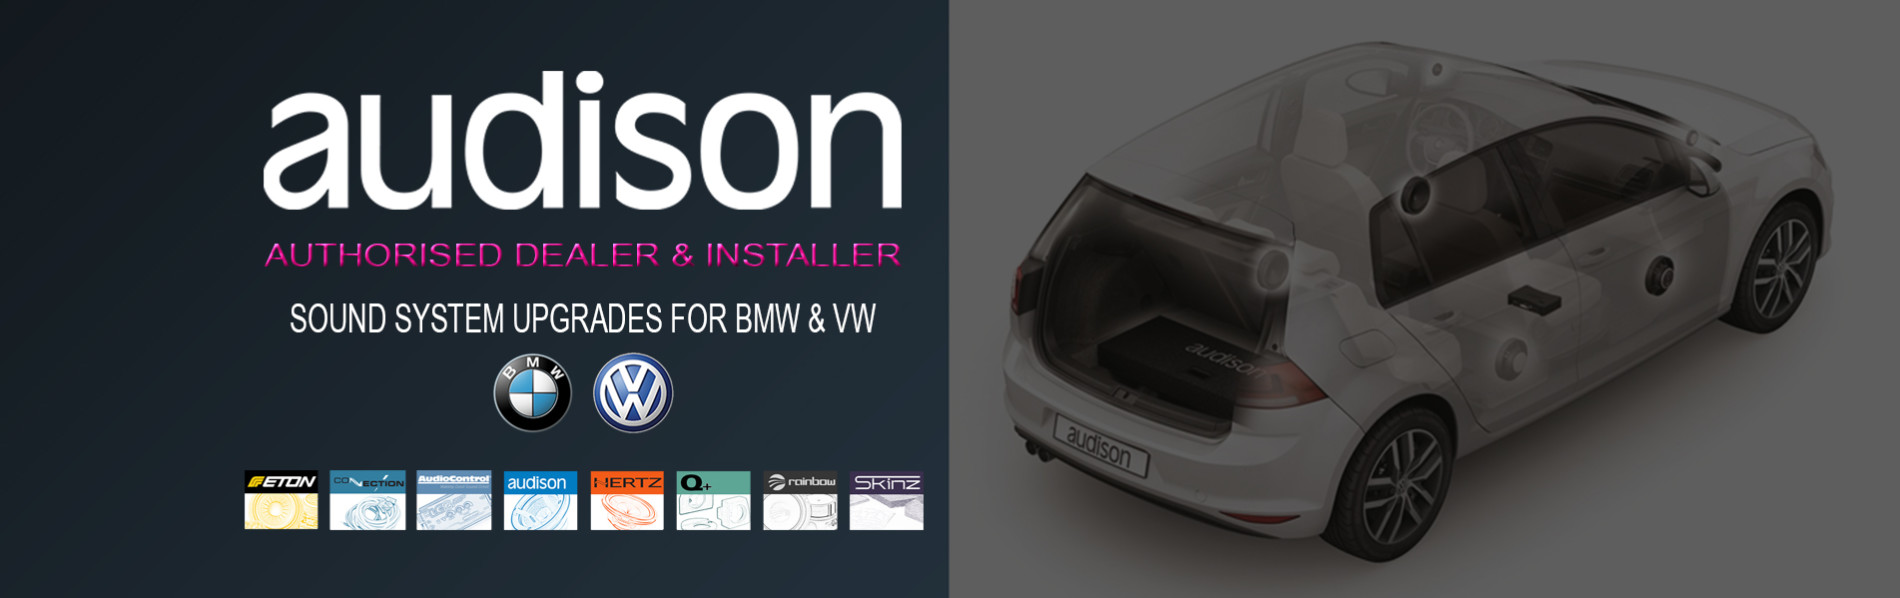 SLIDER BANNER AUDISON